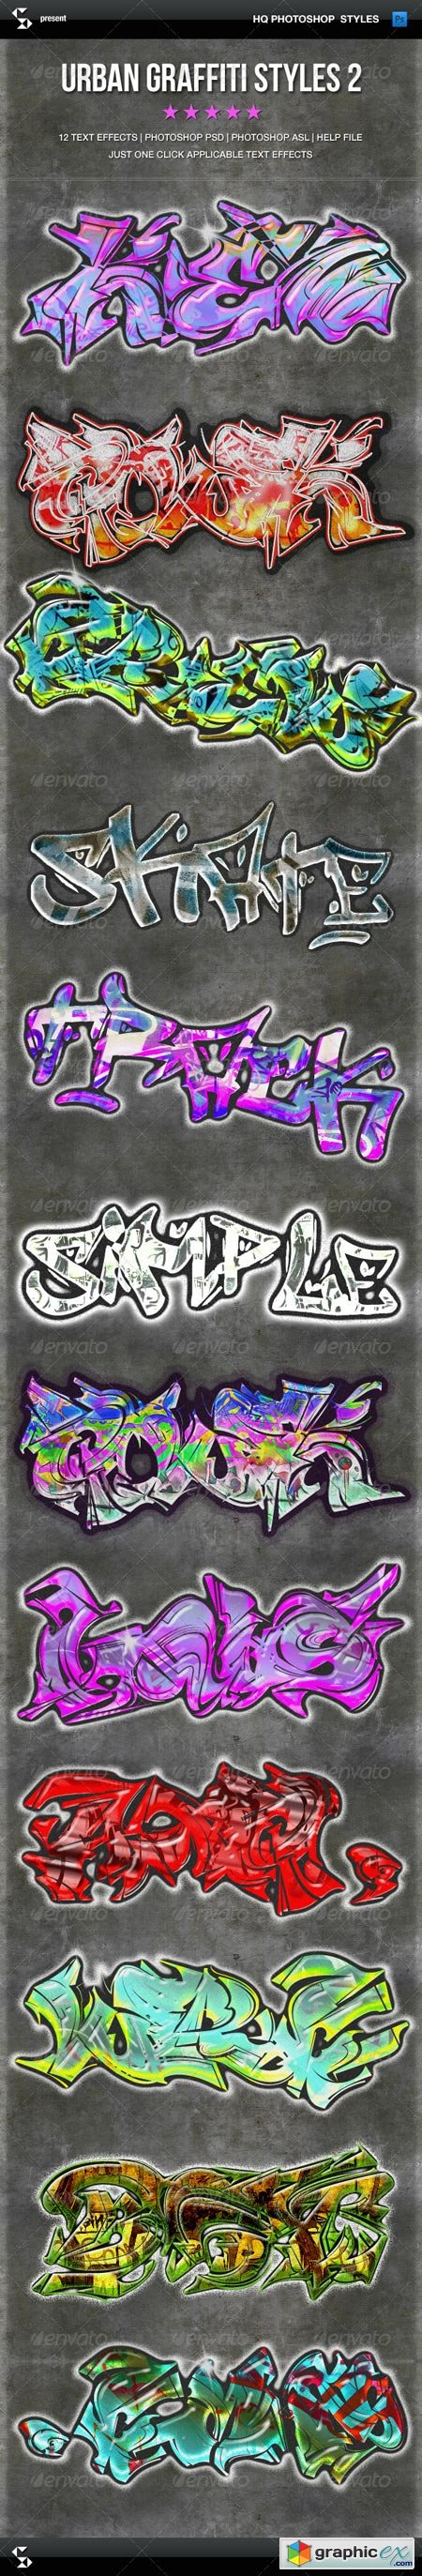 Urban Graffiti Text Effects 2 6703543